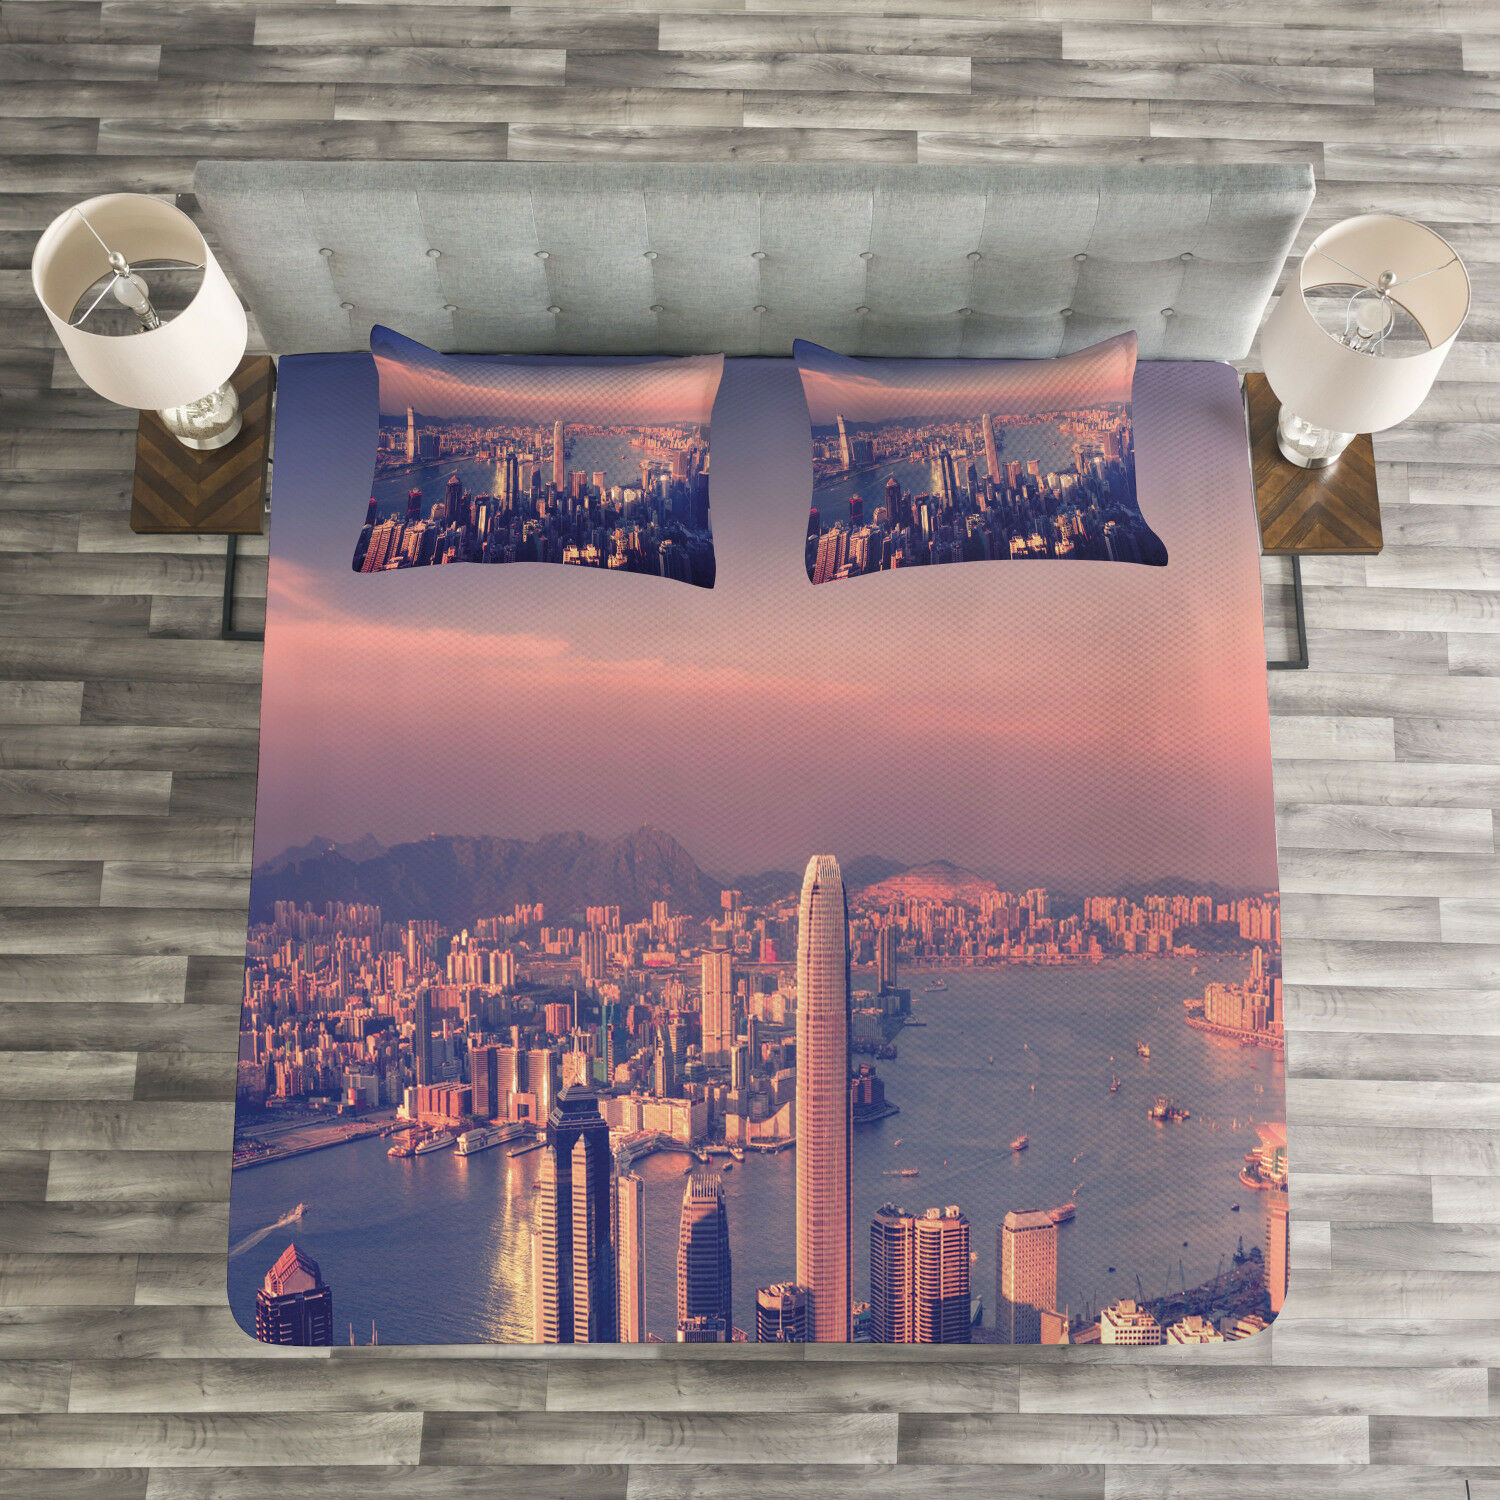 City Quilted Bedspread & Pillow Shams Set, Dreamy Hong Kong Scenery Print